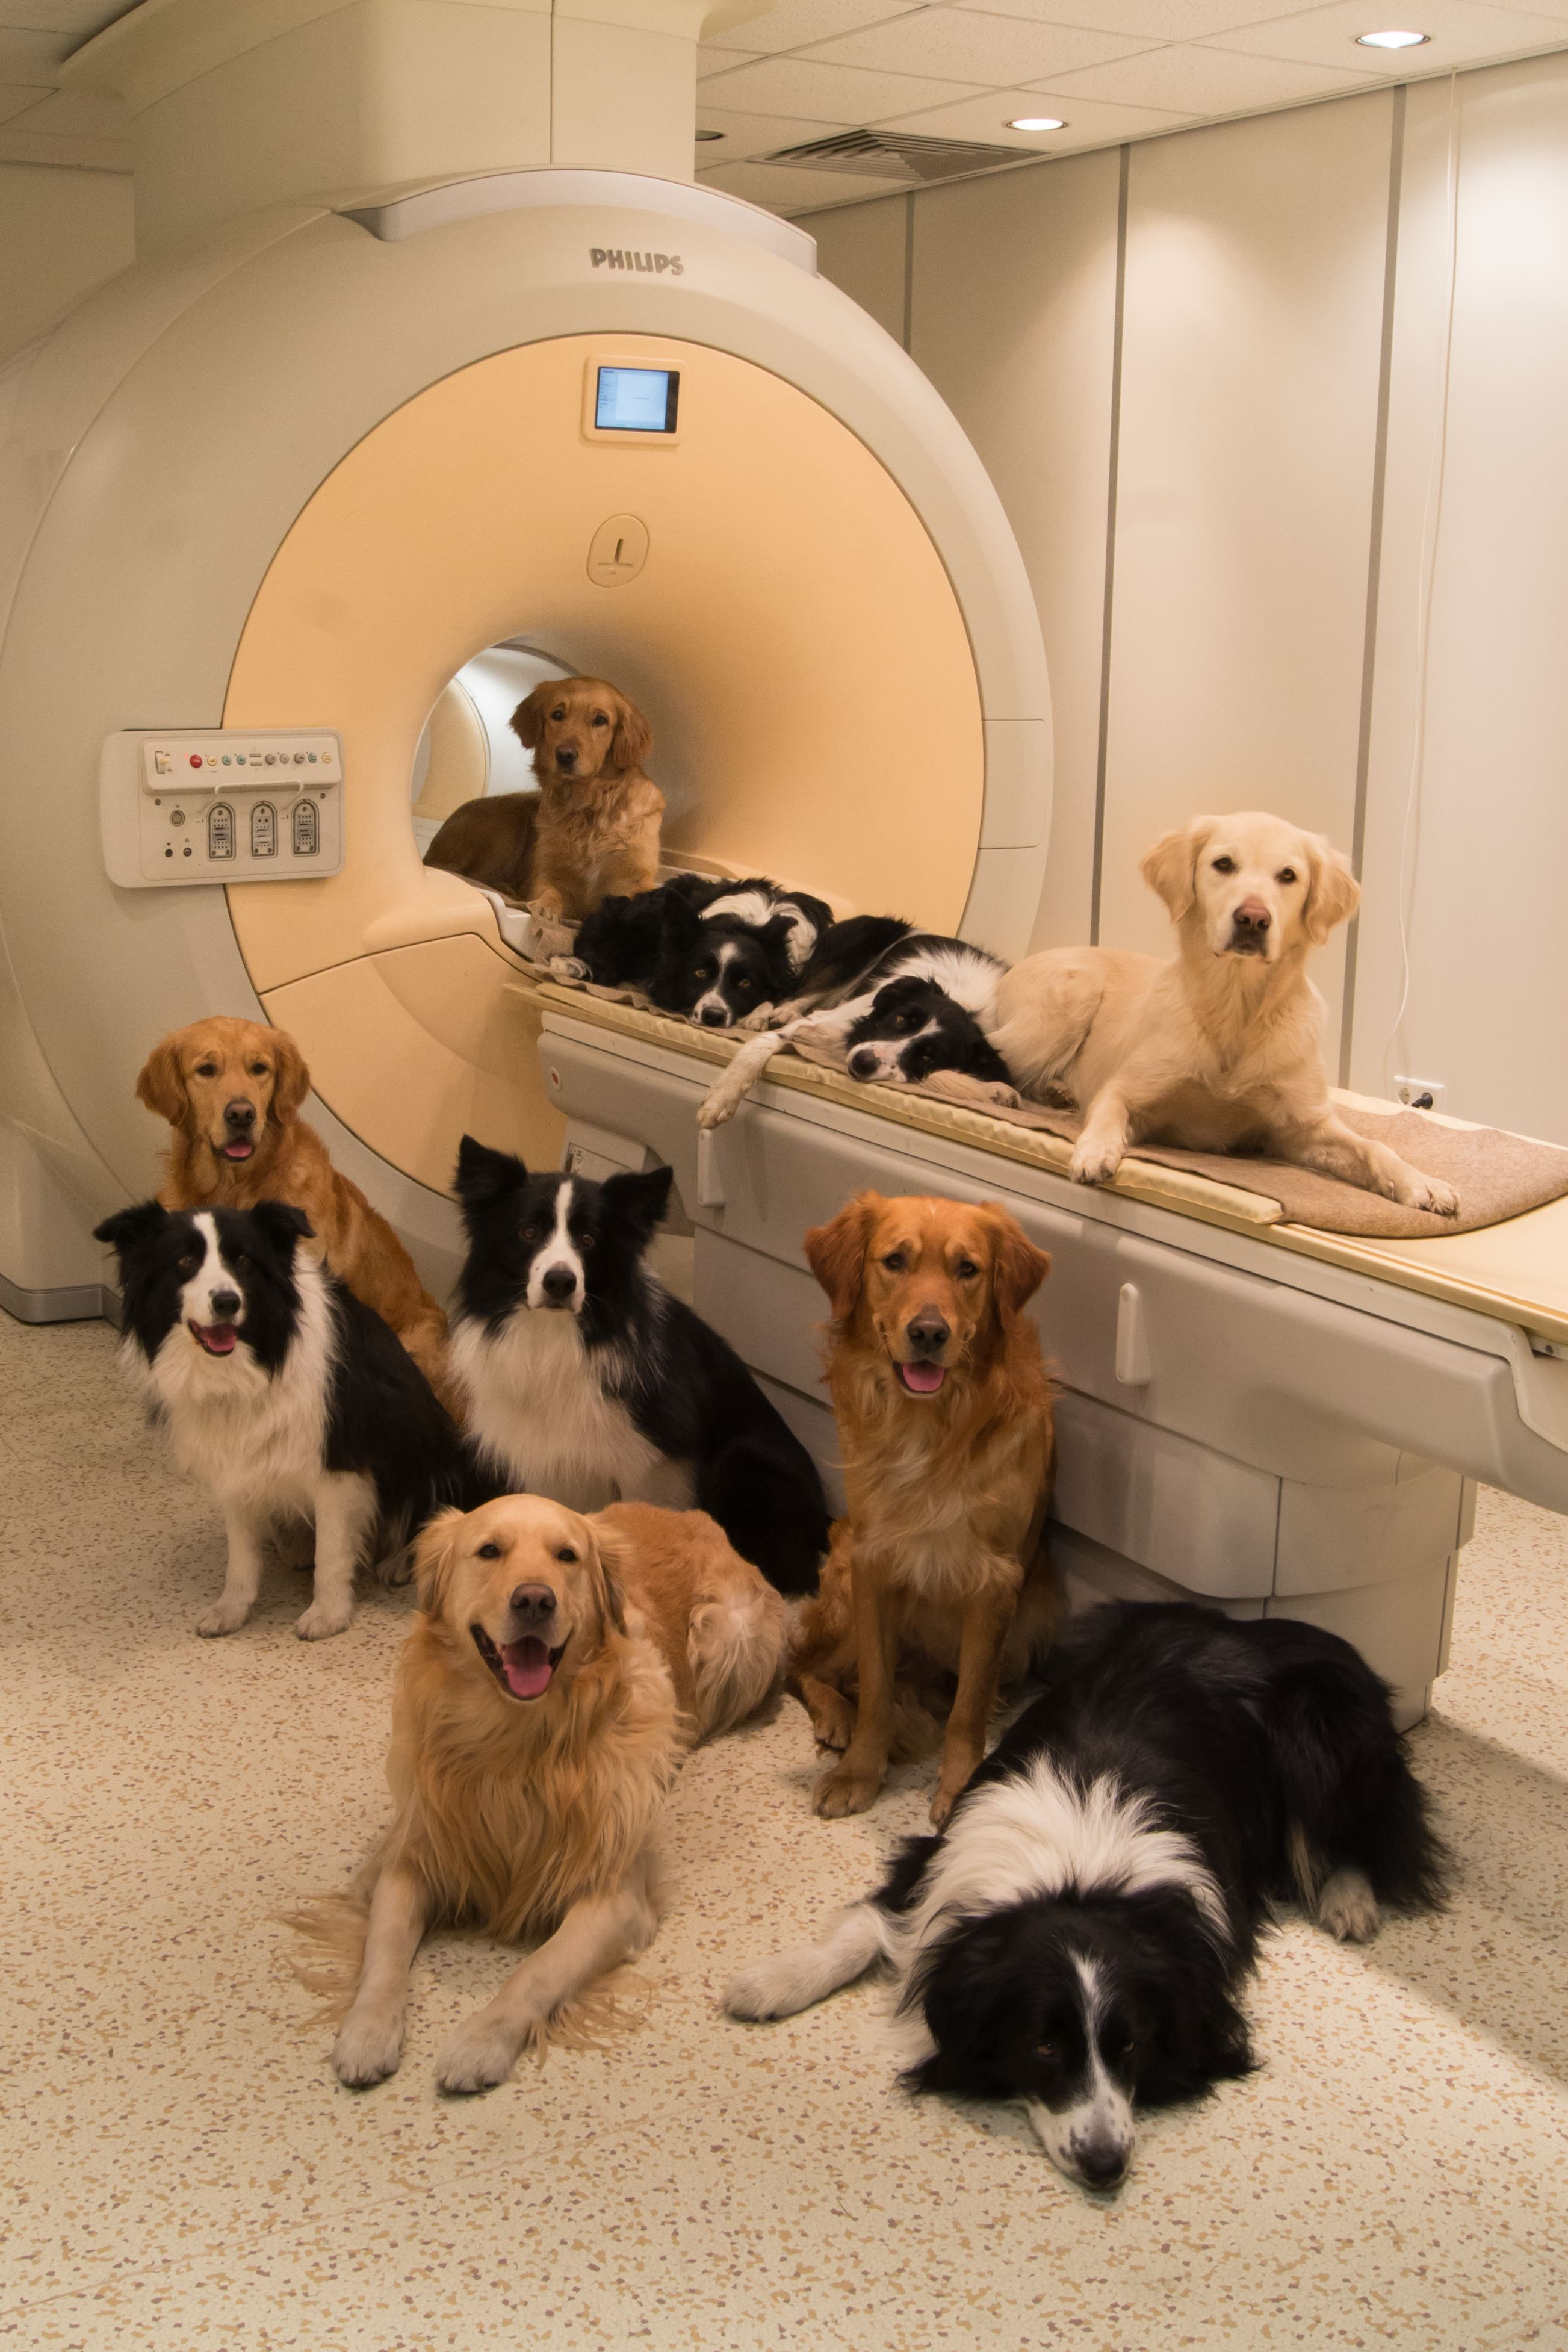 Canine participants of the study. Image credit: Borbála Ferenczy.